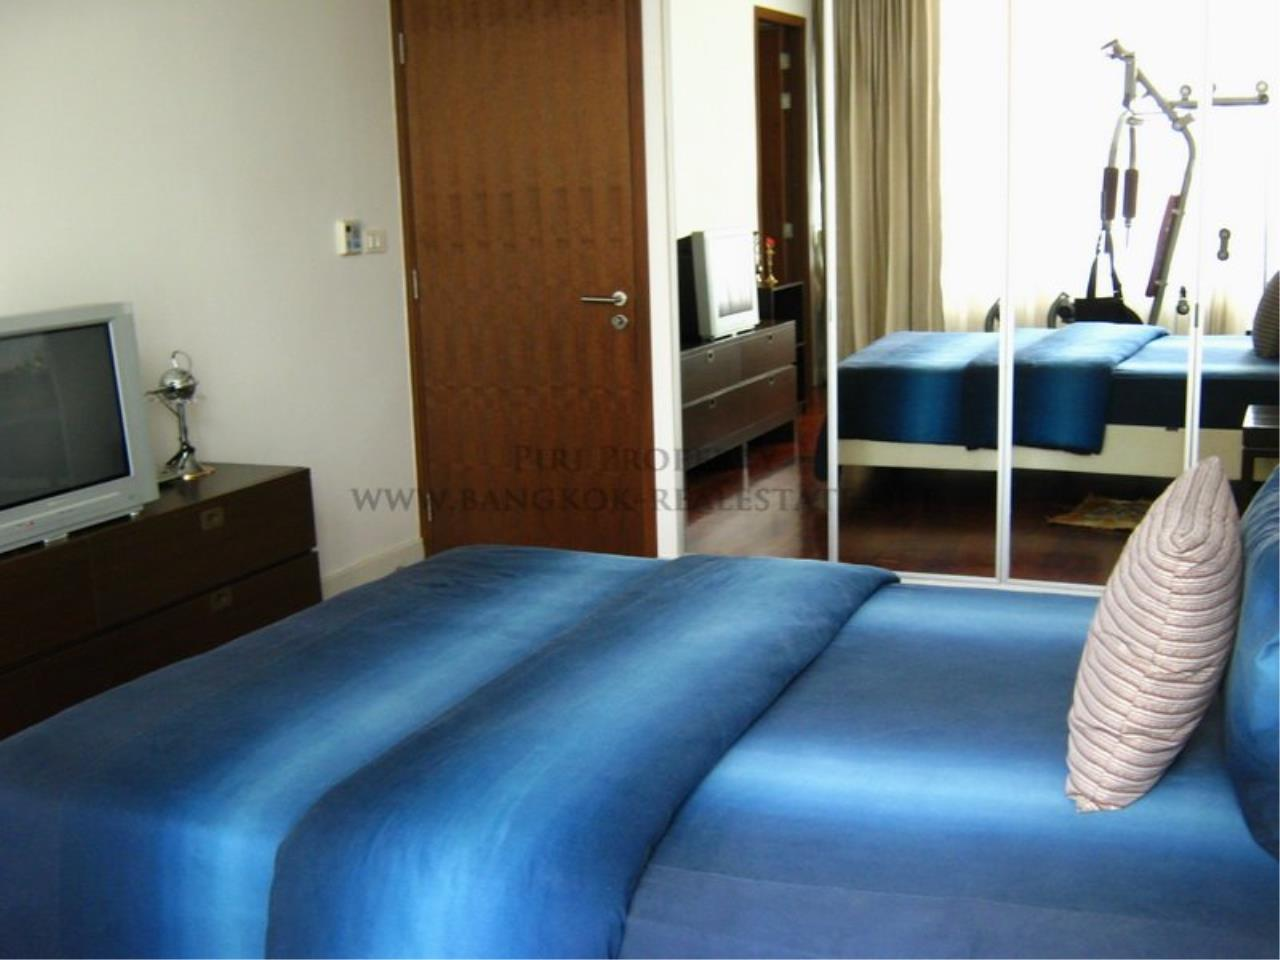 Piri Property Agency's Spacious 3 Bedroom near Asoke on Sukhumvit Soi 20 - 200 SQM 7